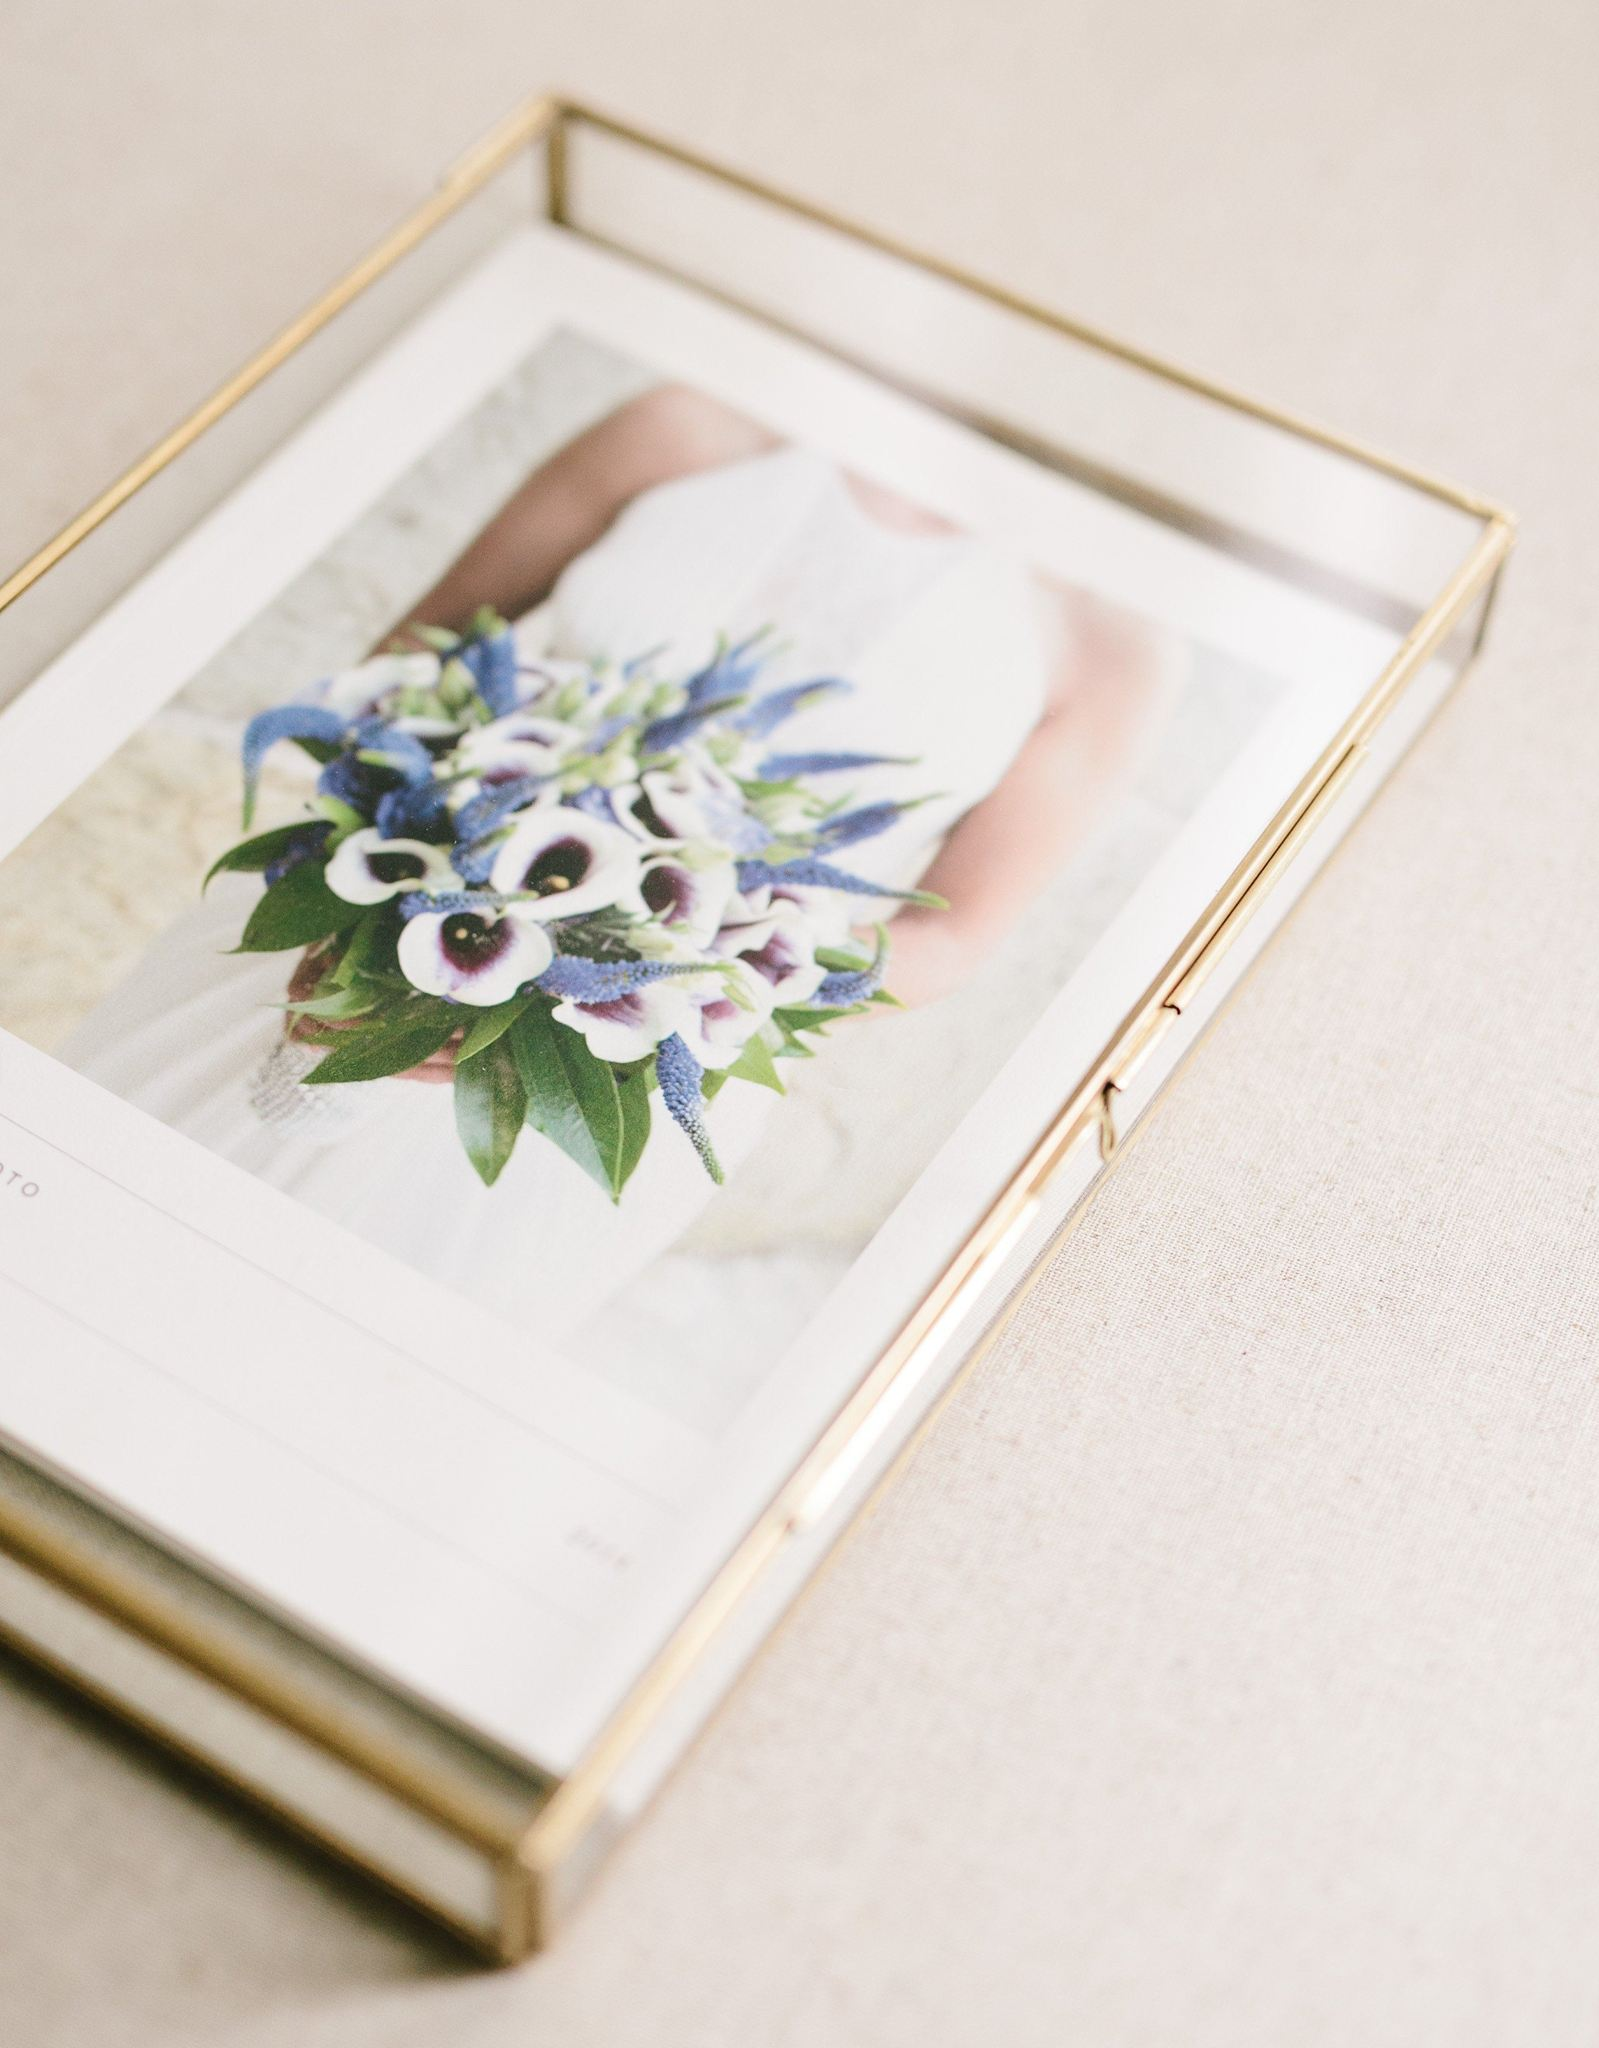 glass luxe heirloom folio box wilmington NC photographer